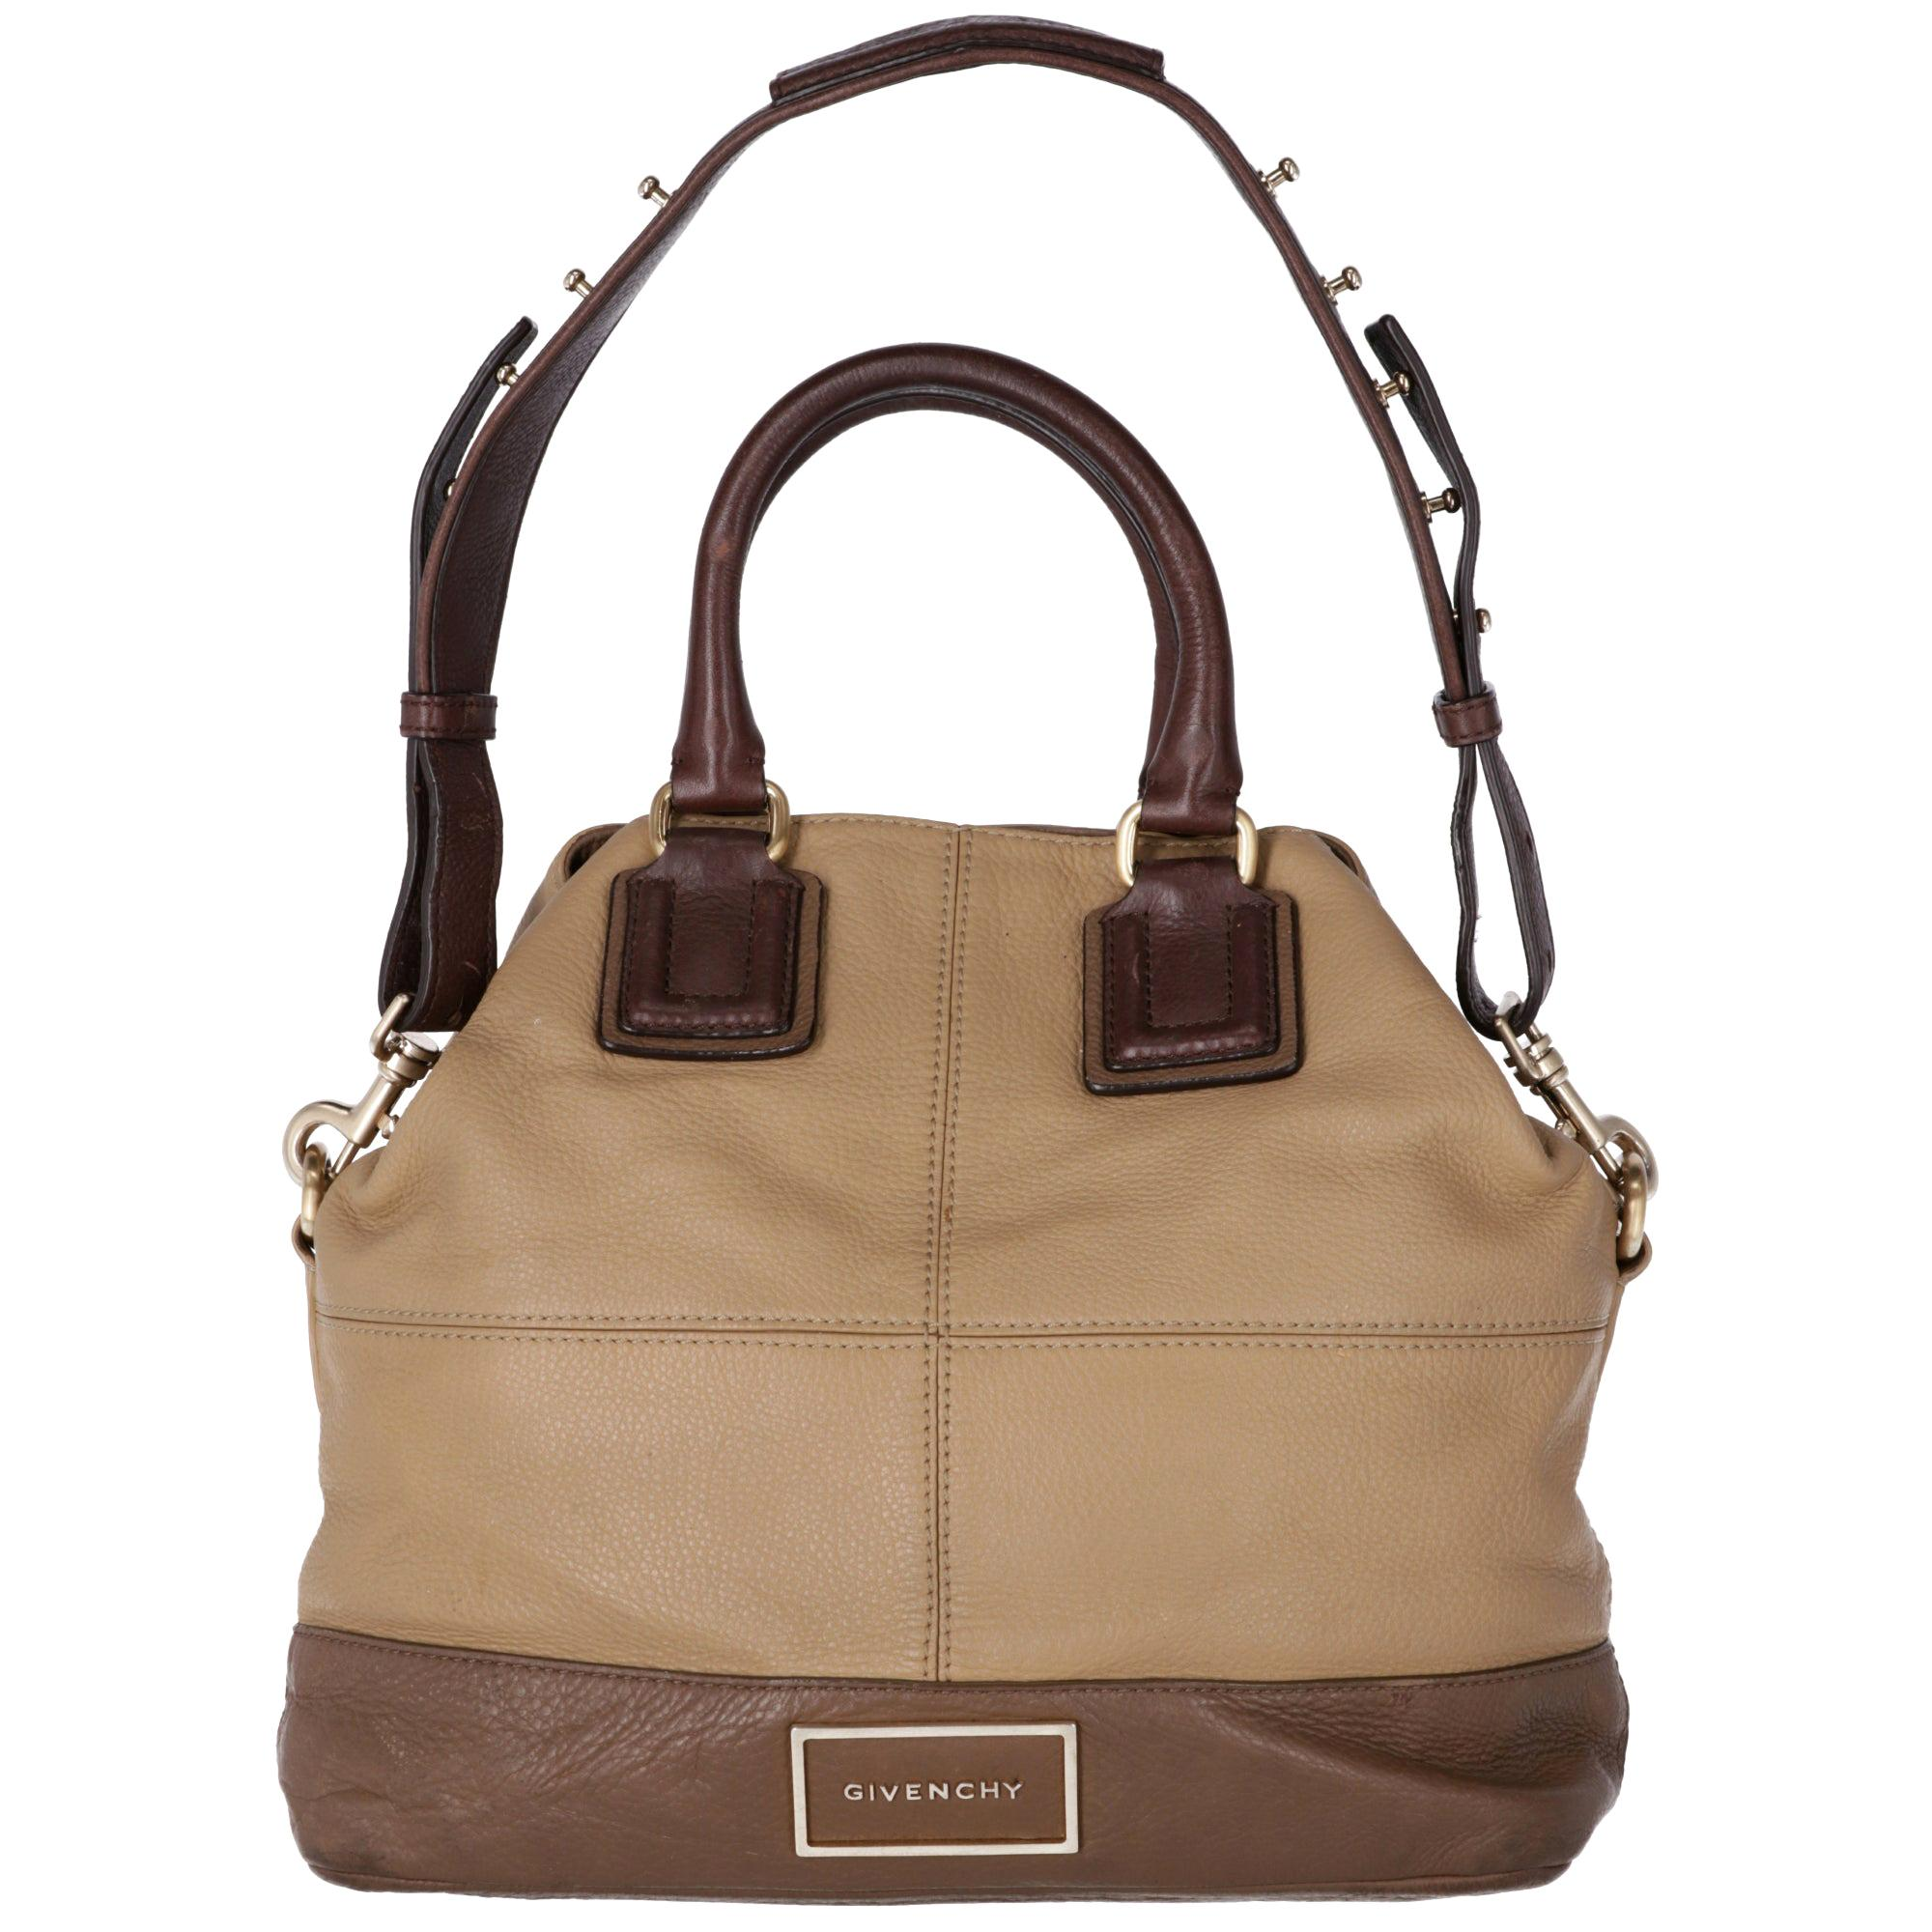 2010s Givenchy Lether Tote Bag